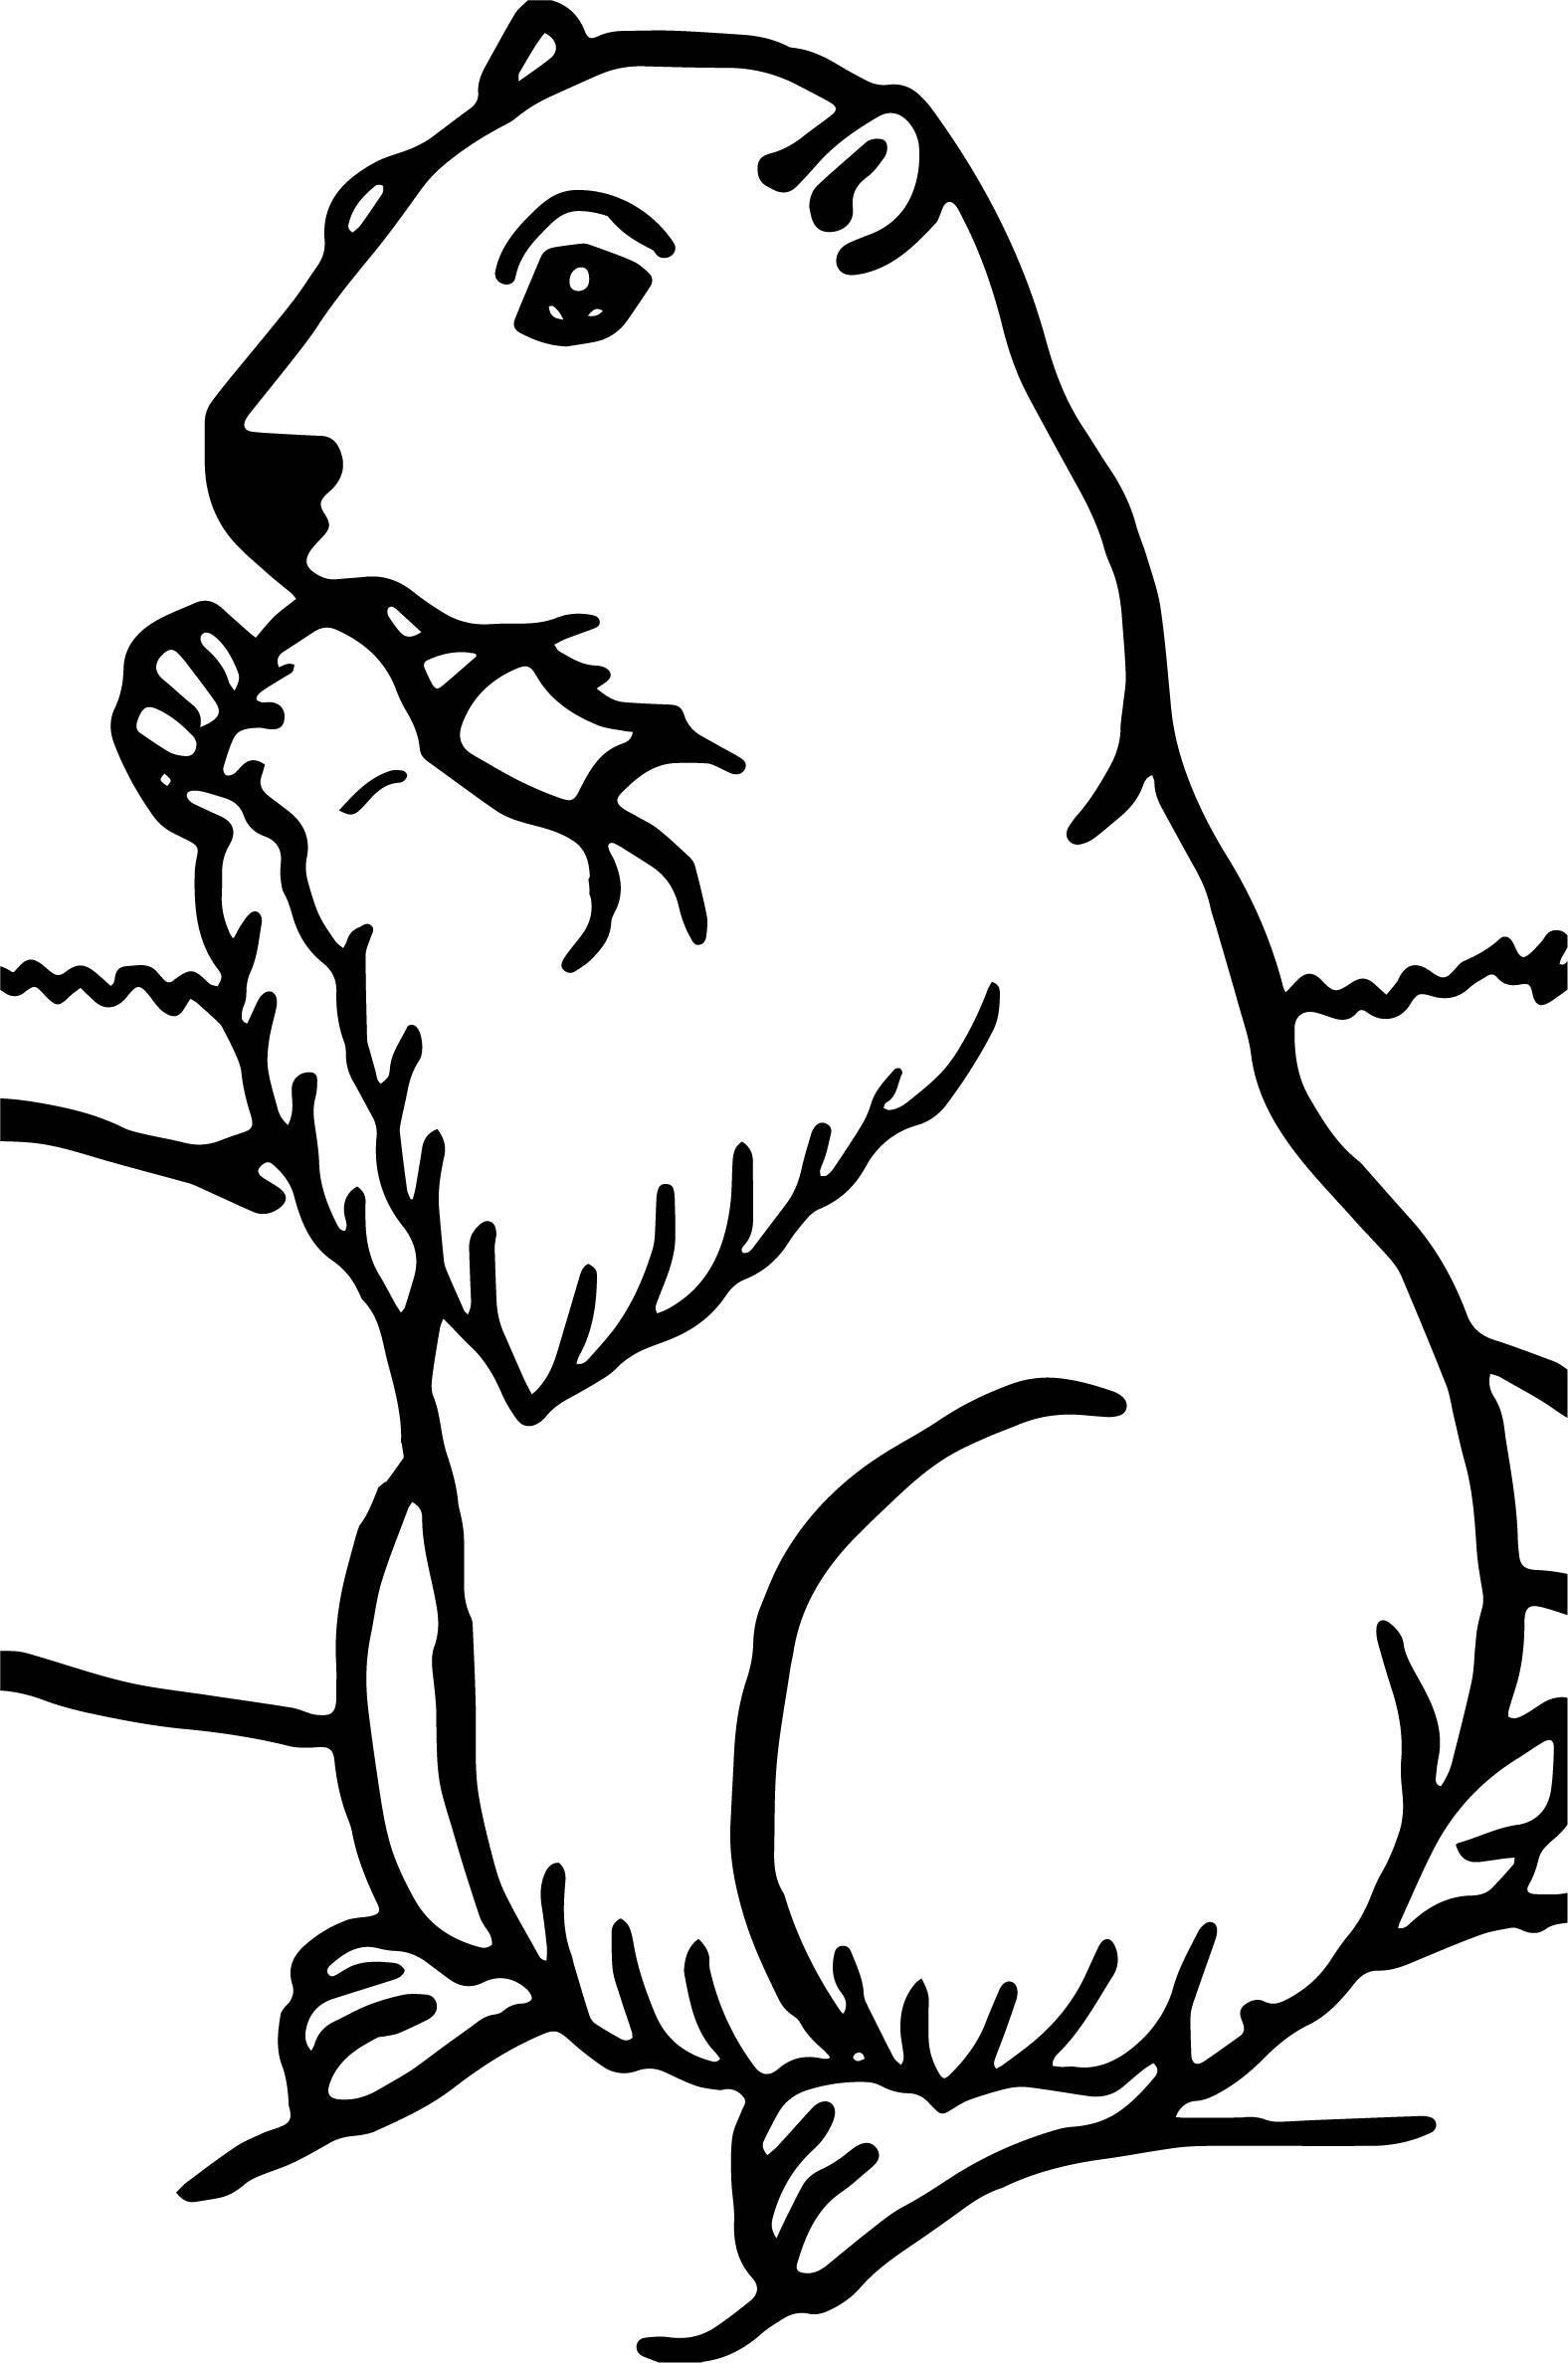 groundhog pictures to color groundhog coloring pages best coloring pages for kids to pictures groundhog color